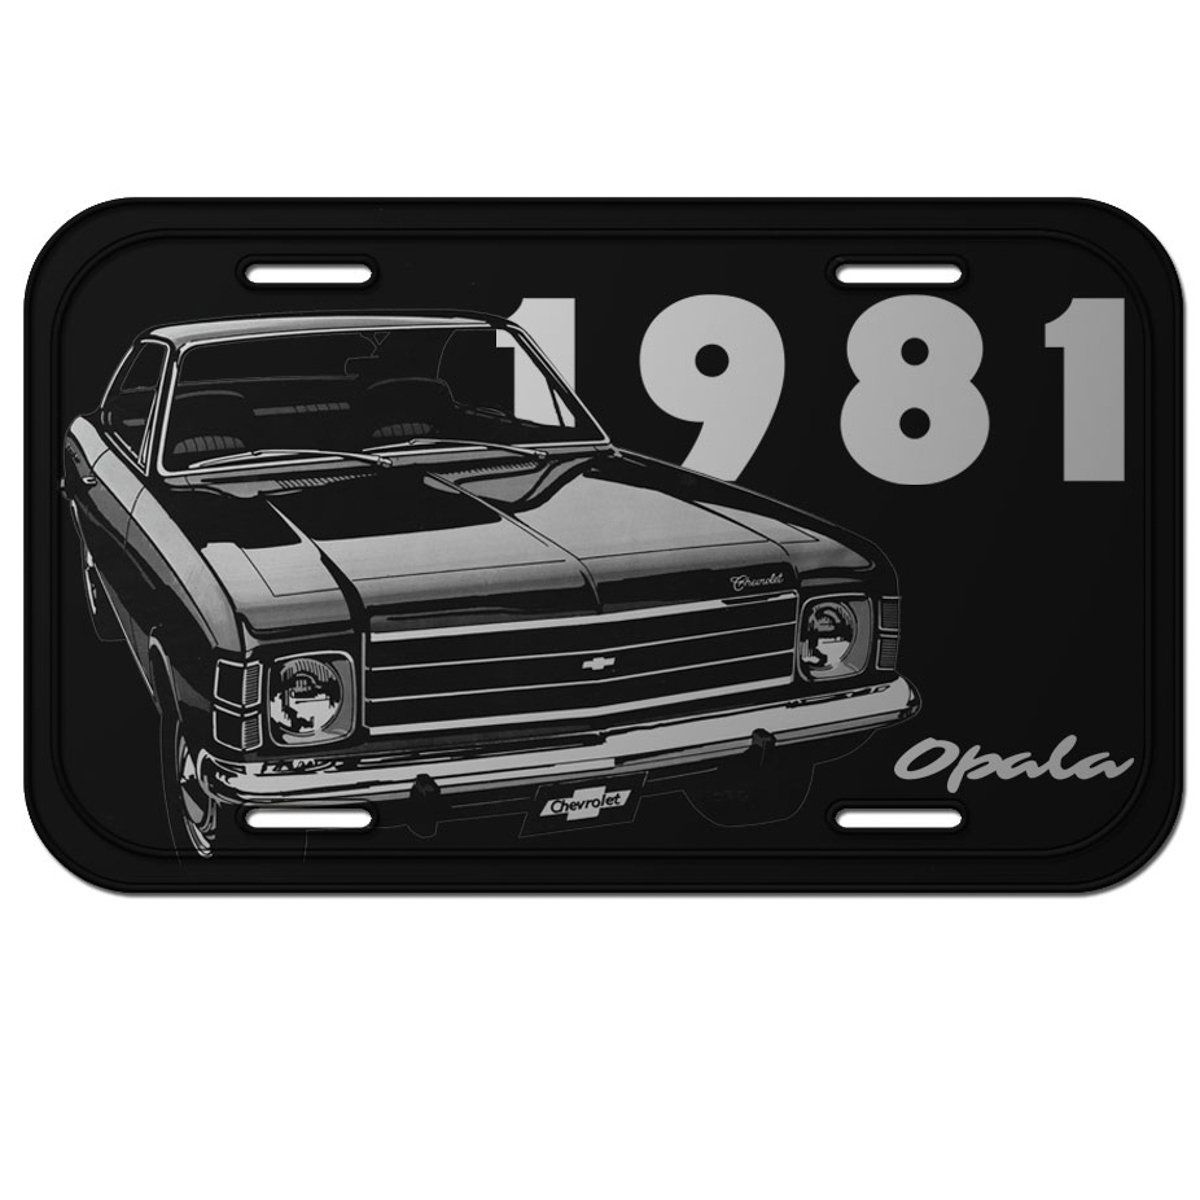 Placa De Carro Decorativa Opala 1981 (Preto): GM